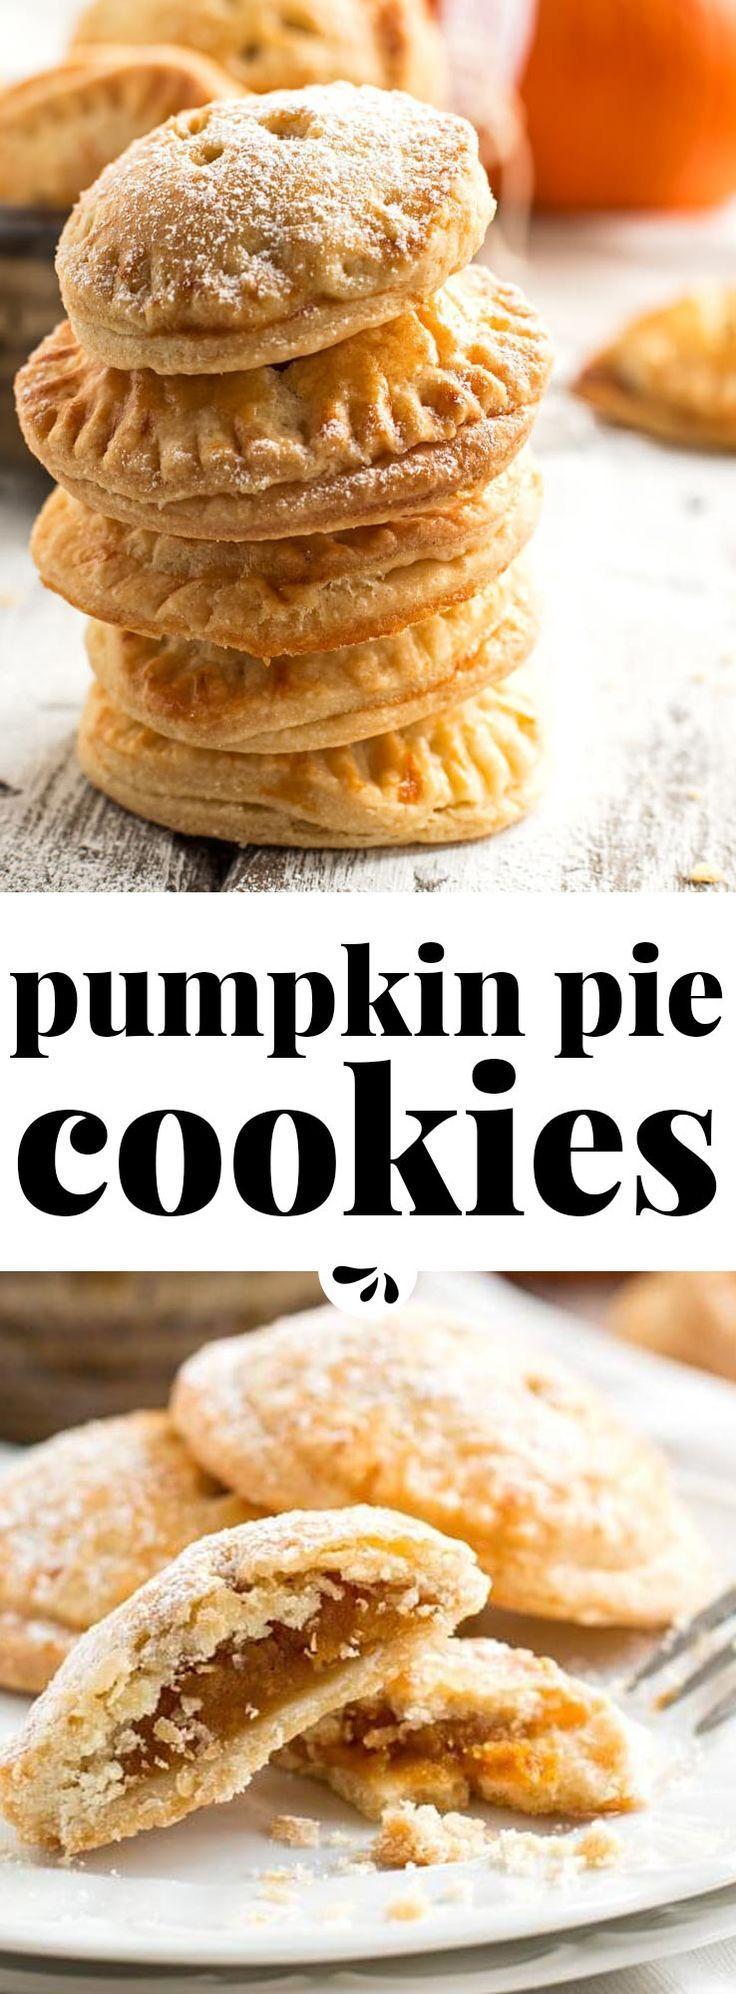 Every single one of these cookies is like a mini pumpkin pie - an absolute must-make recipe for the Thanksgiving or Halloween dessert table! They are so adorable. Because they're bite-sized they are a great recipe for a buffet style holiday party. But be prepared: Even though the recipe makes a lot, they will vanish FAST!